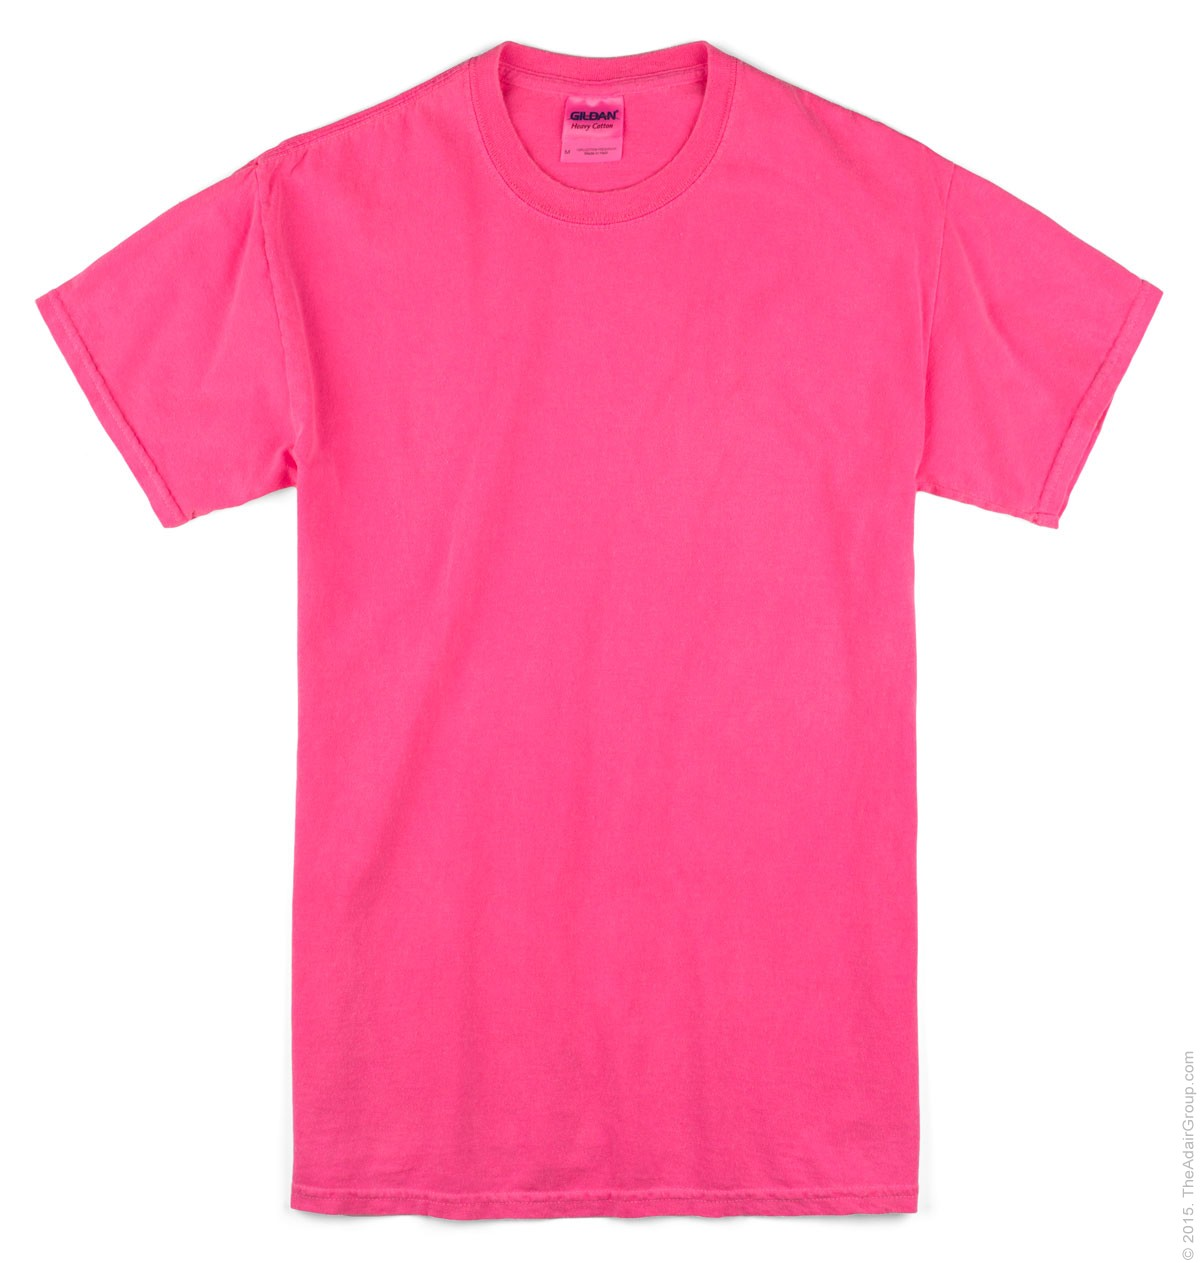 bright pink t shirt is shirt